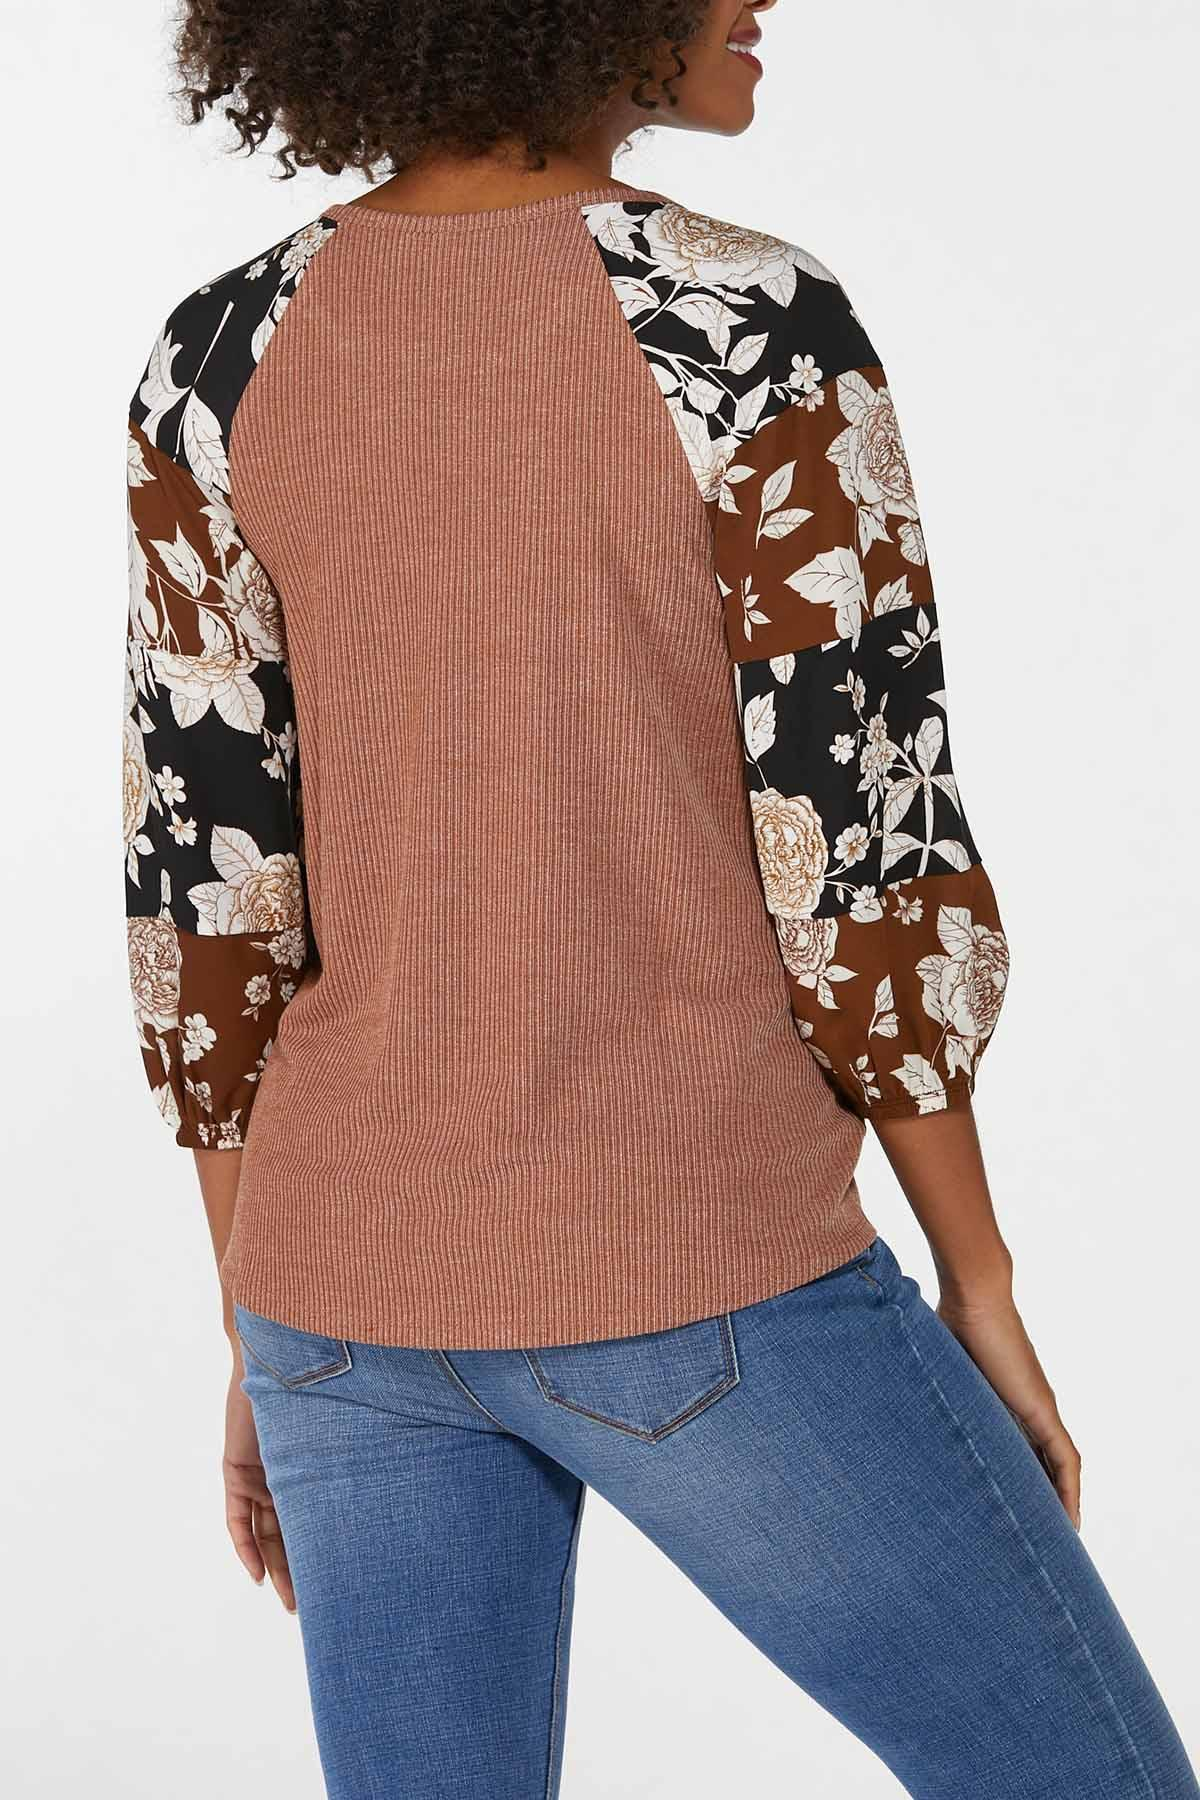 Plus Size Ribbed Mixed Floral Sleeve Top (Item #44703123)